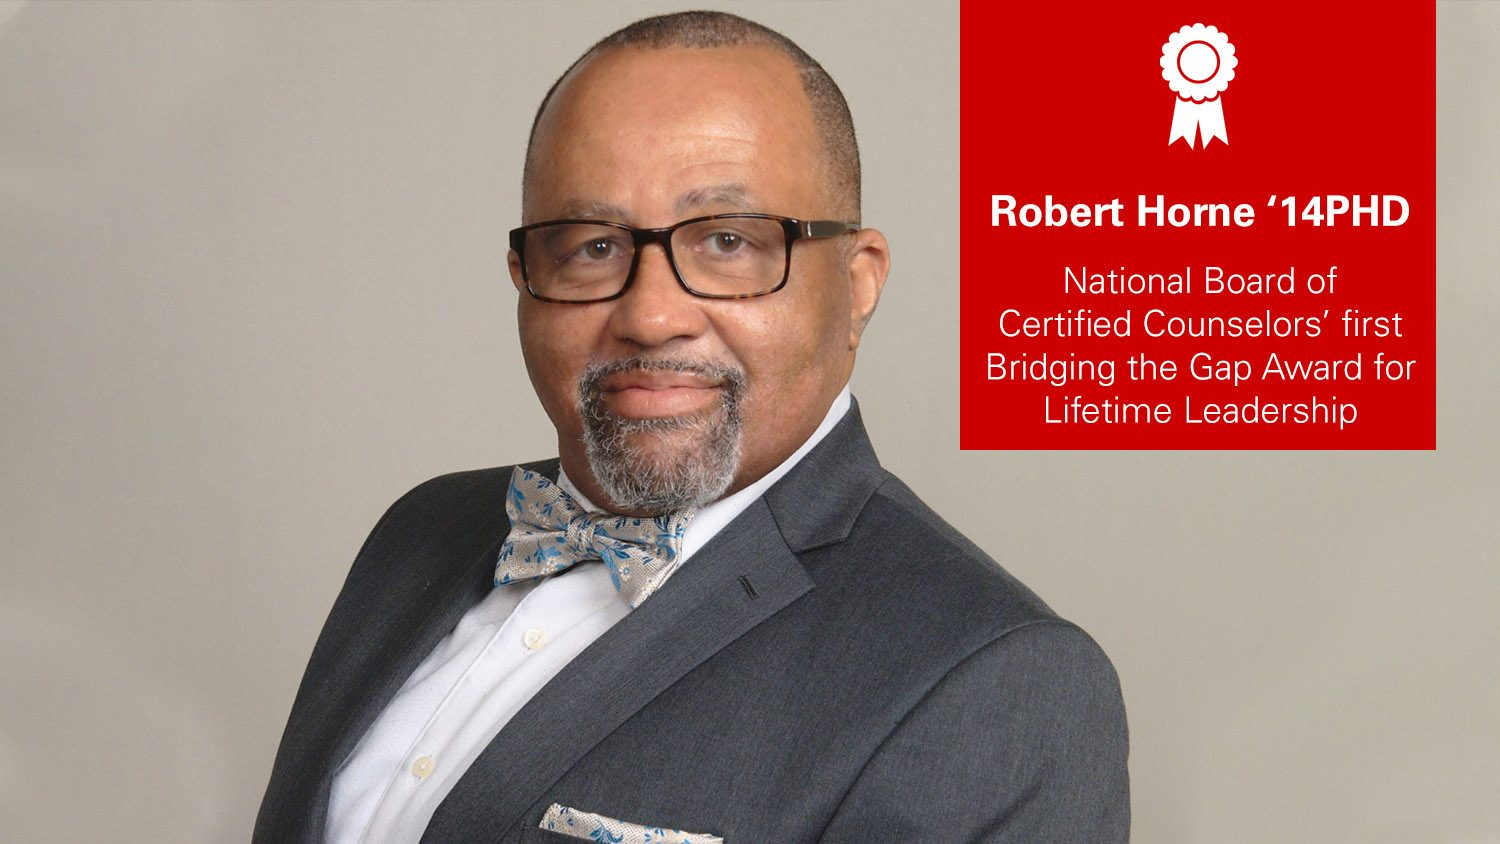 Robert Horne won an award for lifetime leadership